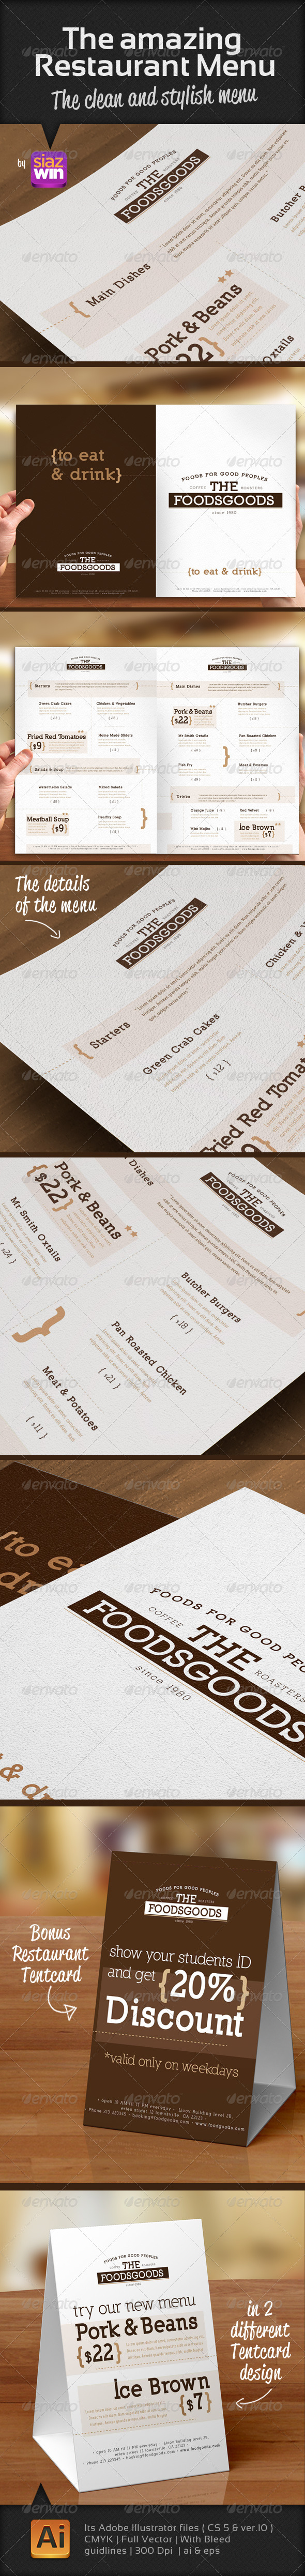 The Amazing Restaurant Menu 1 - Food Menus Print Templates